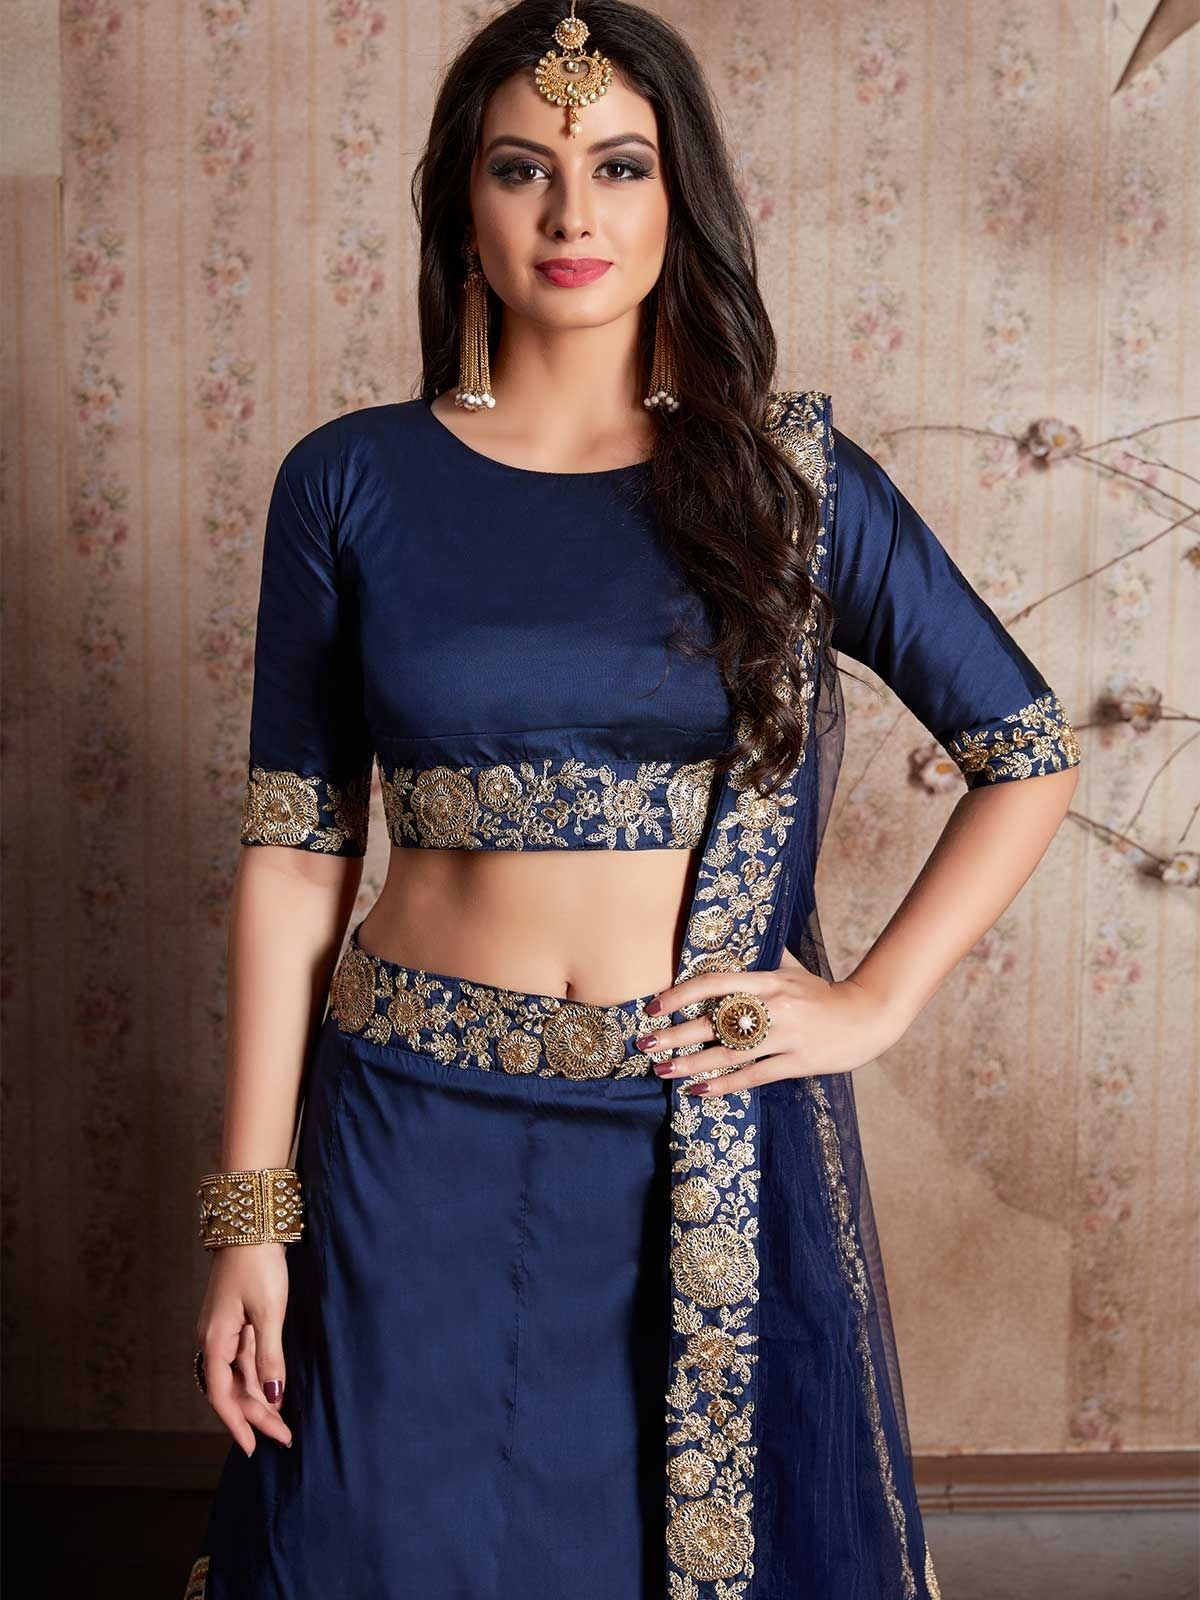 b7a50077cb Buy online navy blue Indian lehenga choli, ethnic wear for women at low  prices from ZaraaFab. Pick the latest navy blue Embroidered Indian designer  lehenga ...